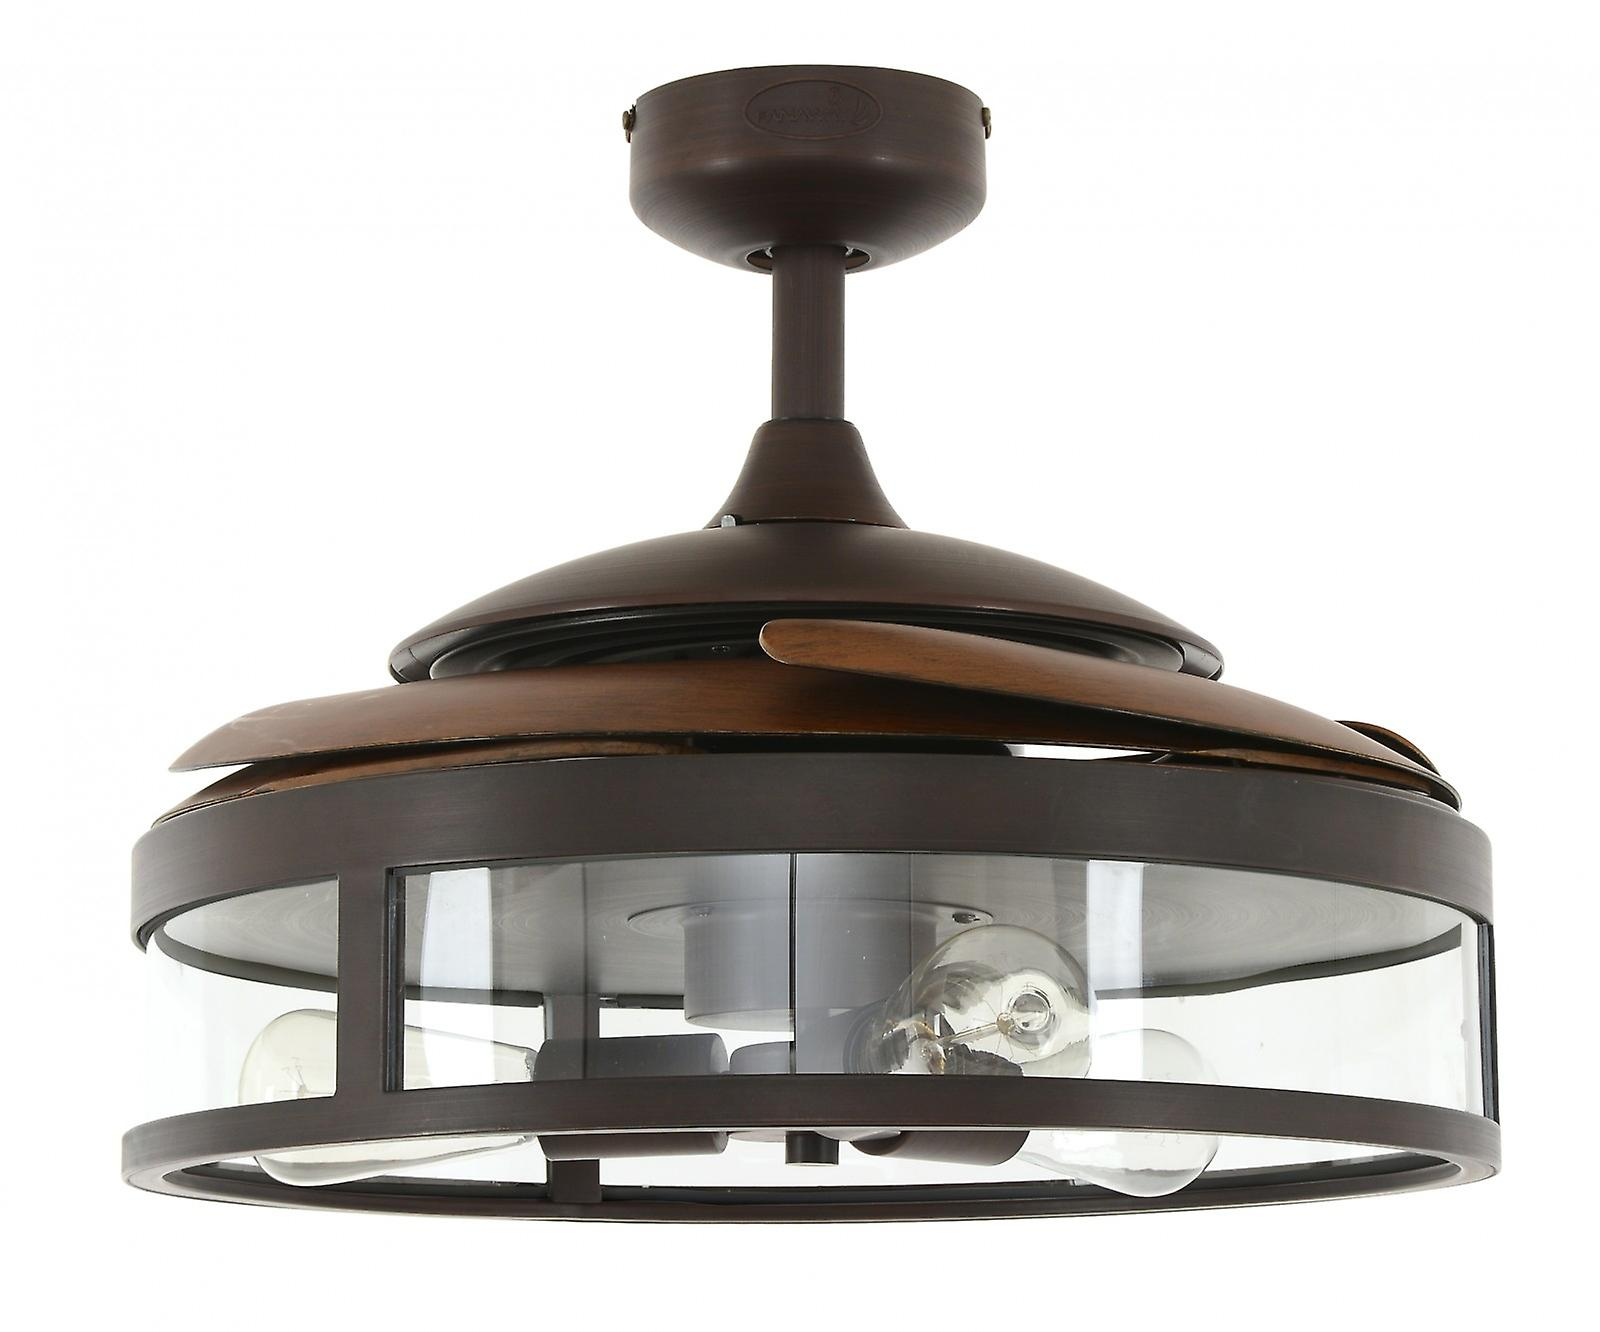 Retractable blade ceiling fan fanaway classic bronze fruugo - Fanaway ceiling fan ...